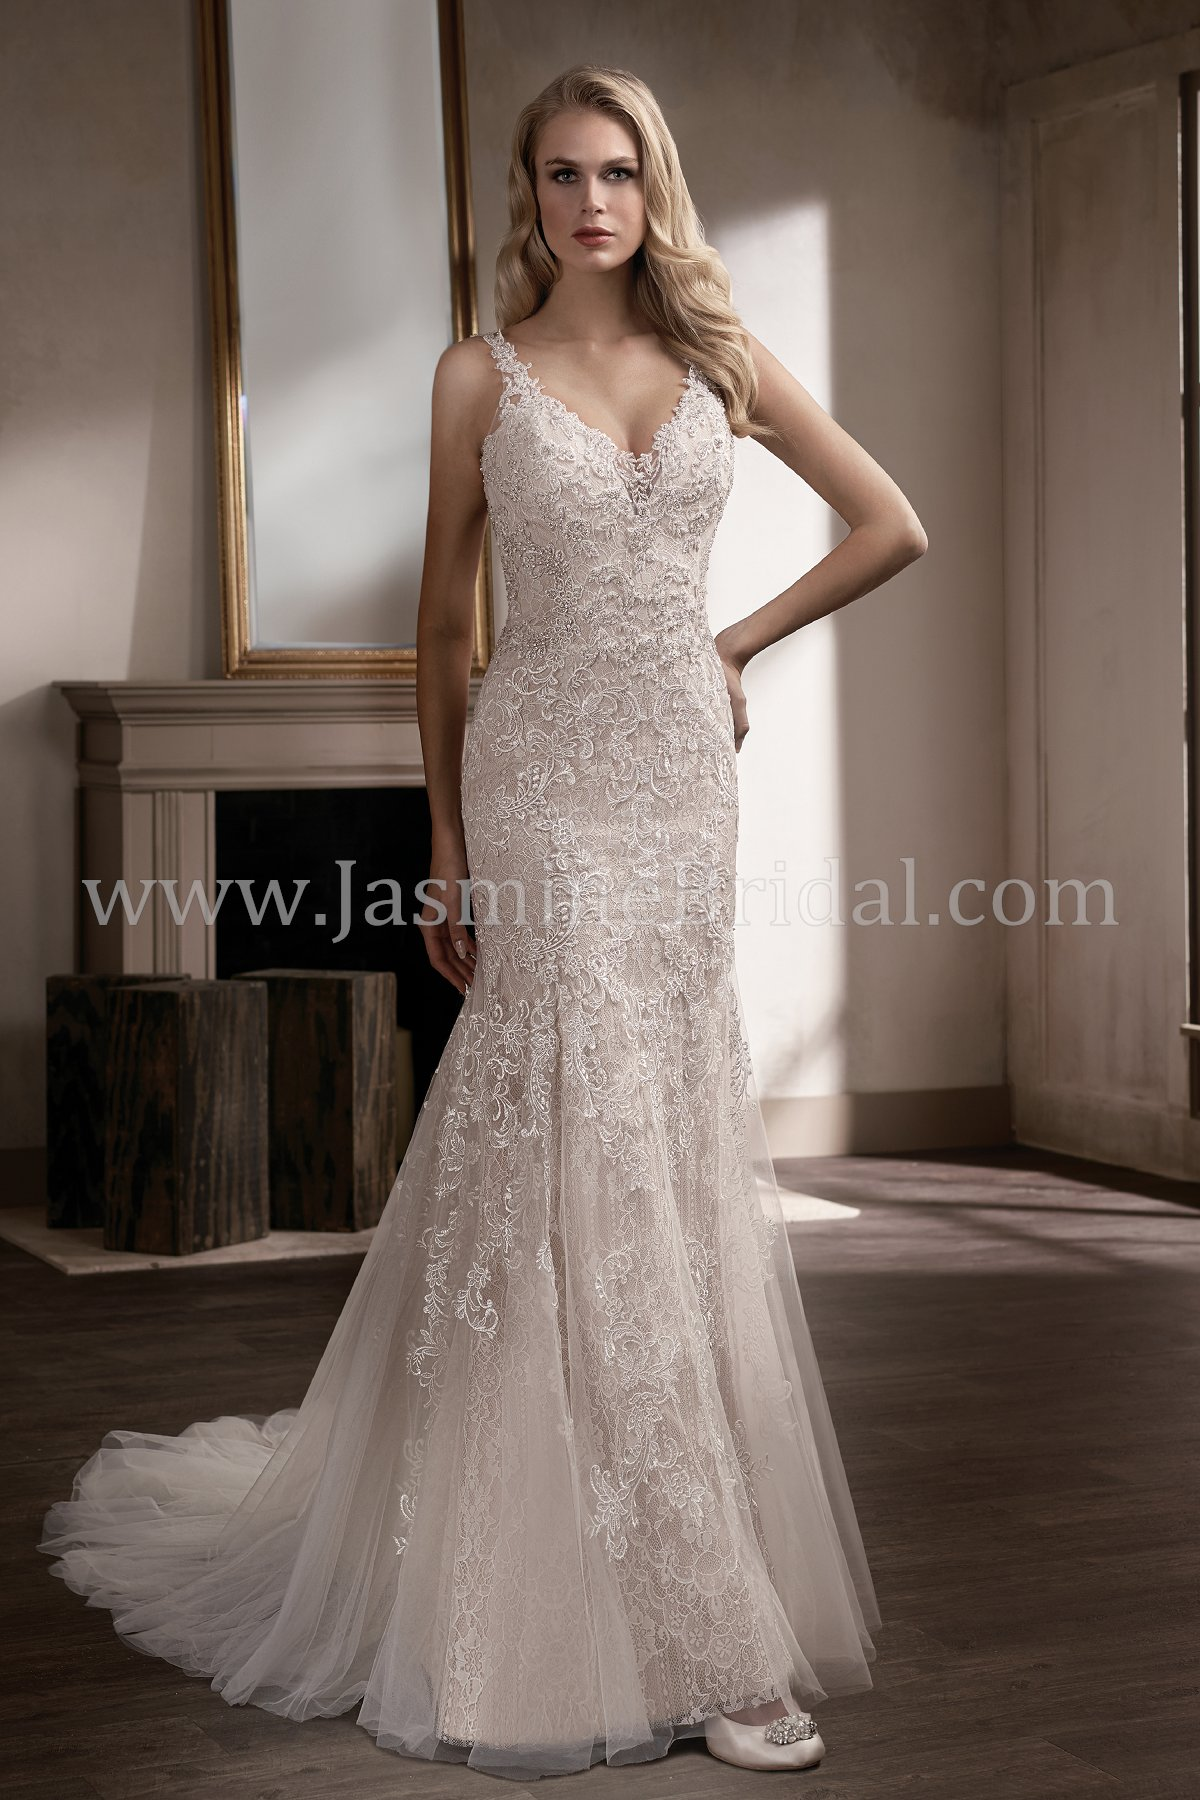 Design your bridal dresses gowns jasmine bridal wedding dresses dressimg junglespirit Image collections